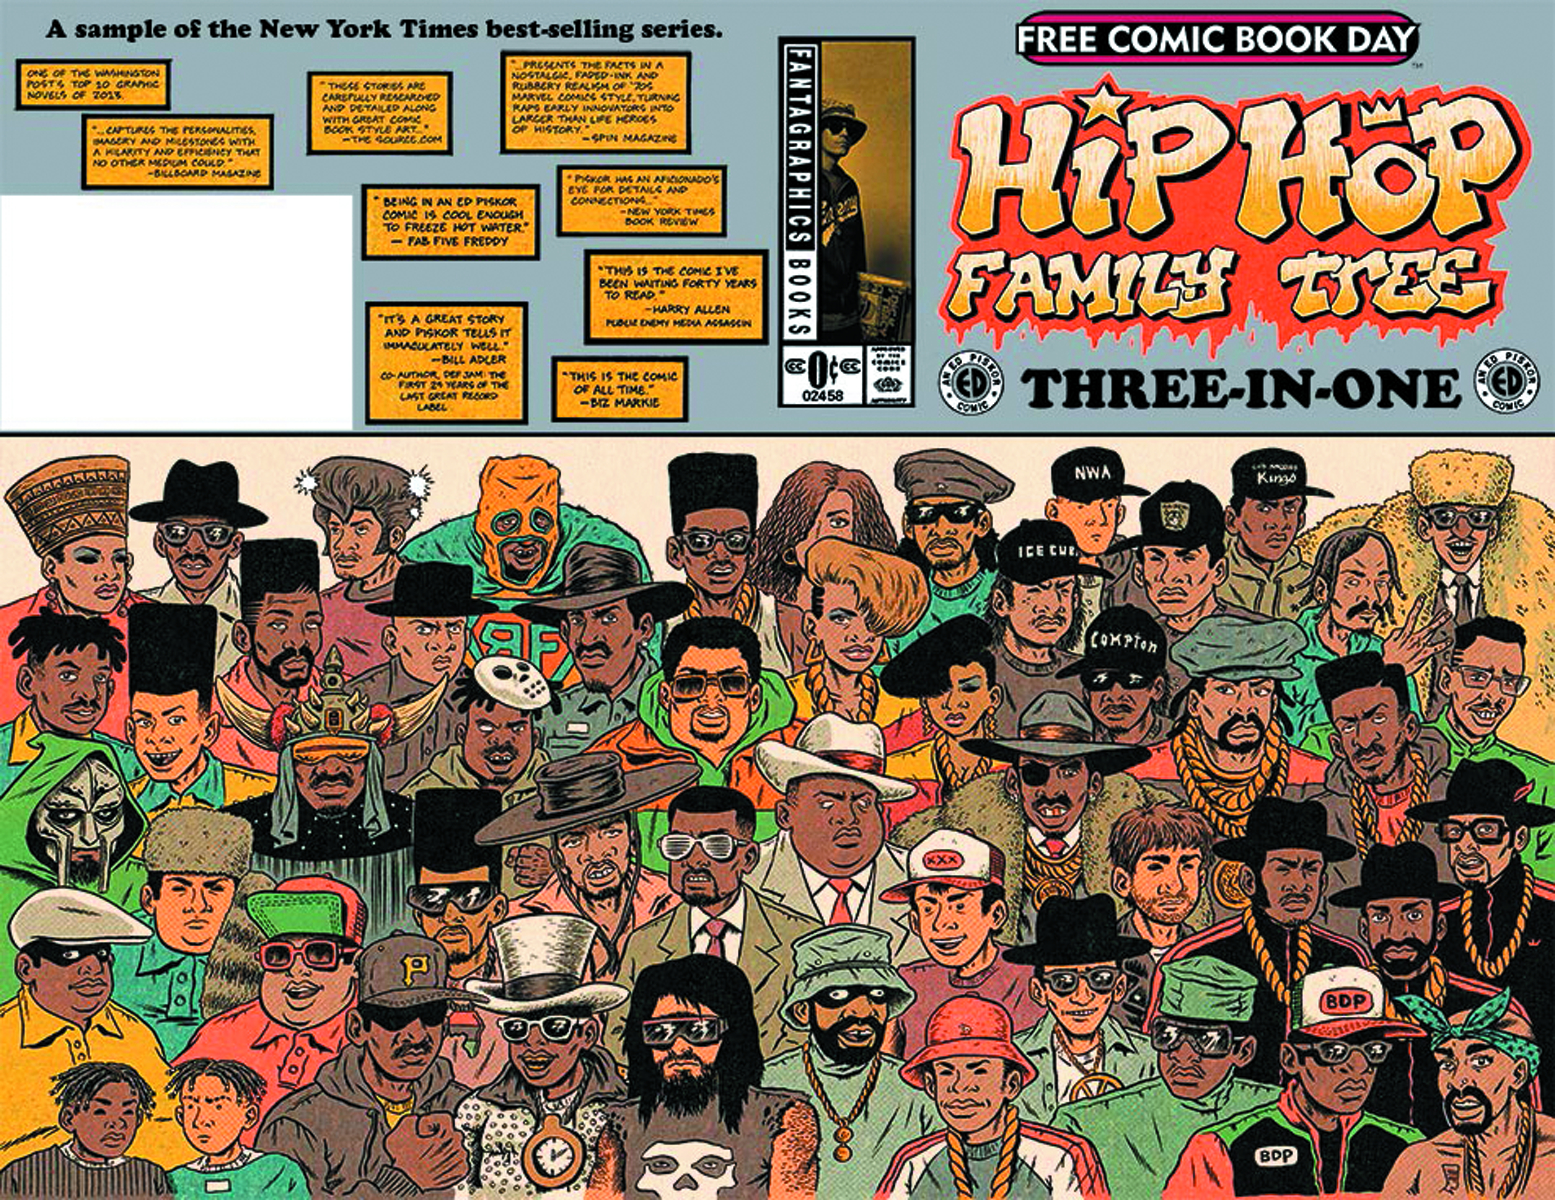 FCBD 2015 HIP HOP FAMILY TREE 3-IN-1 FEATURING COSPLAYERS (N